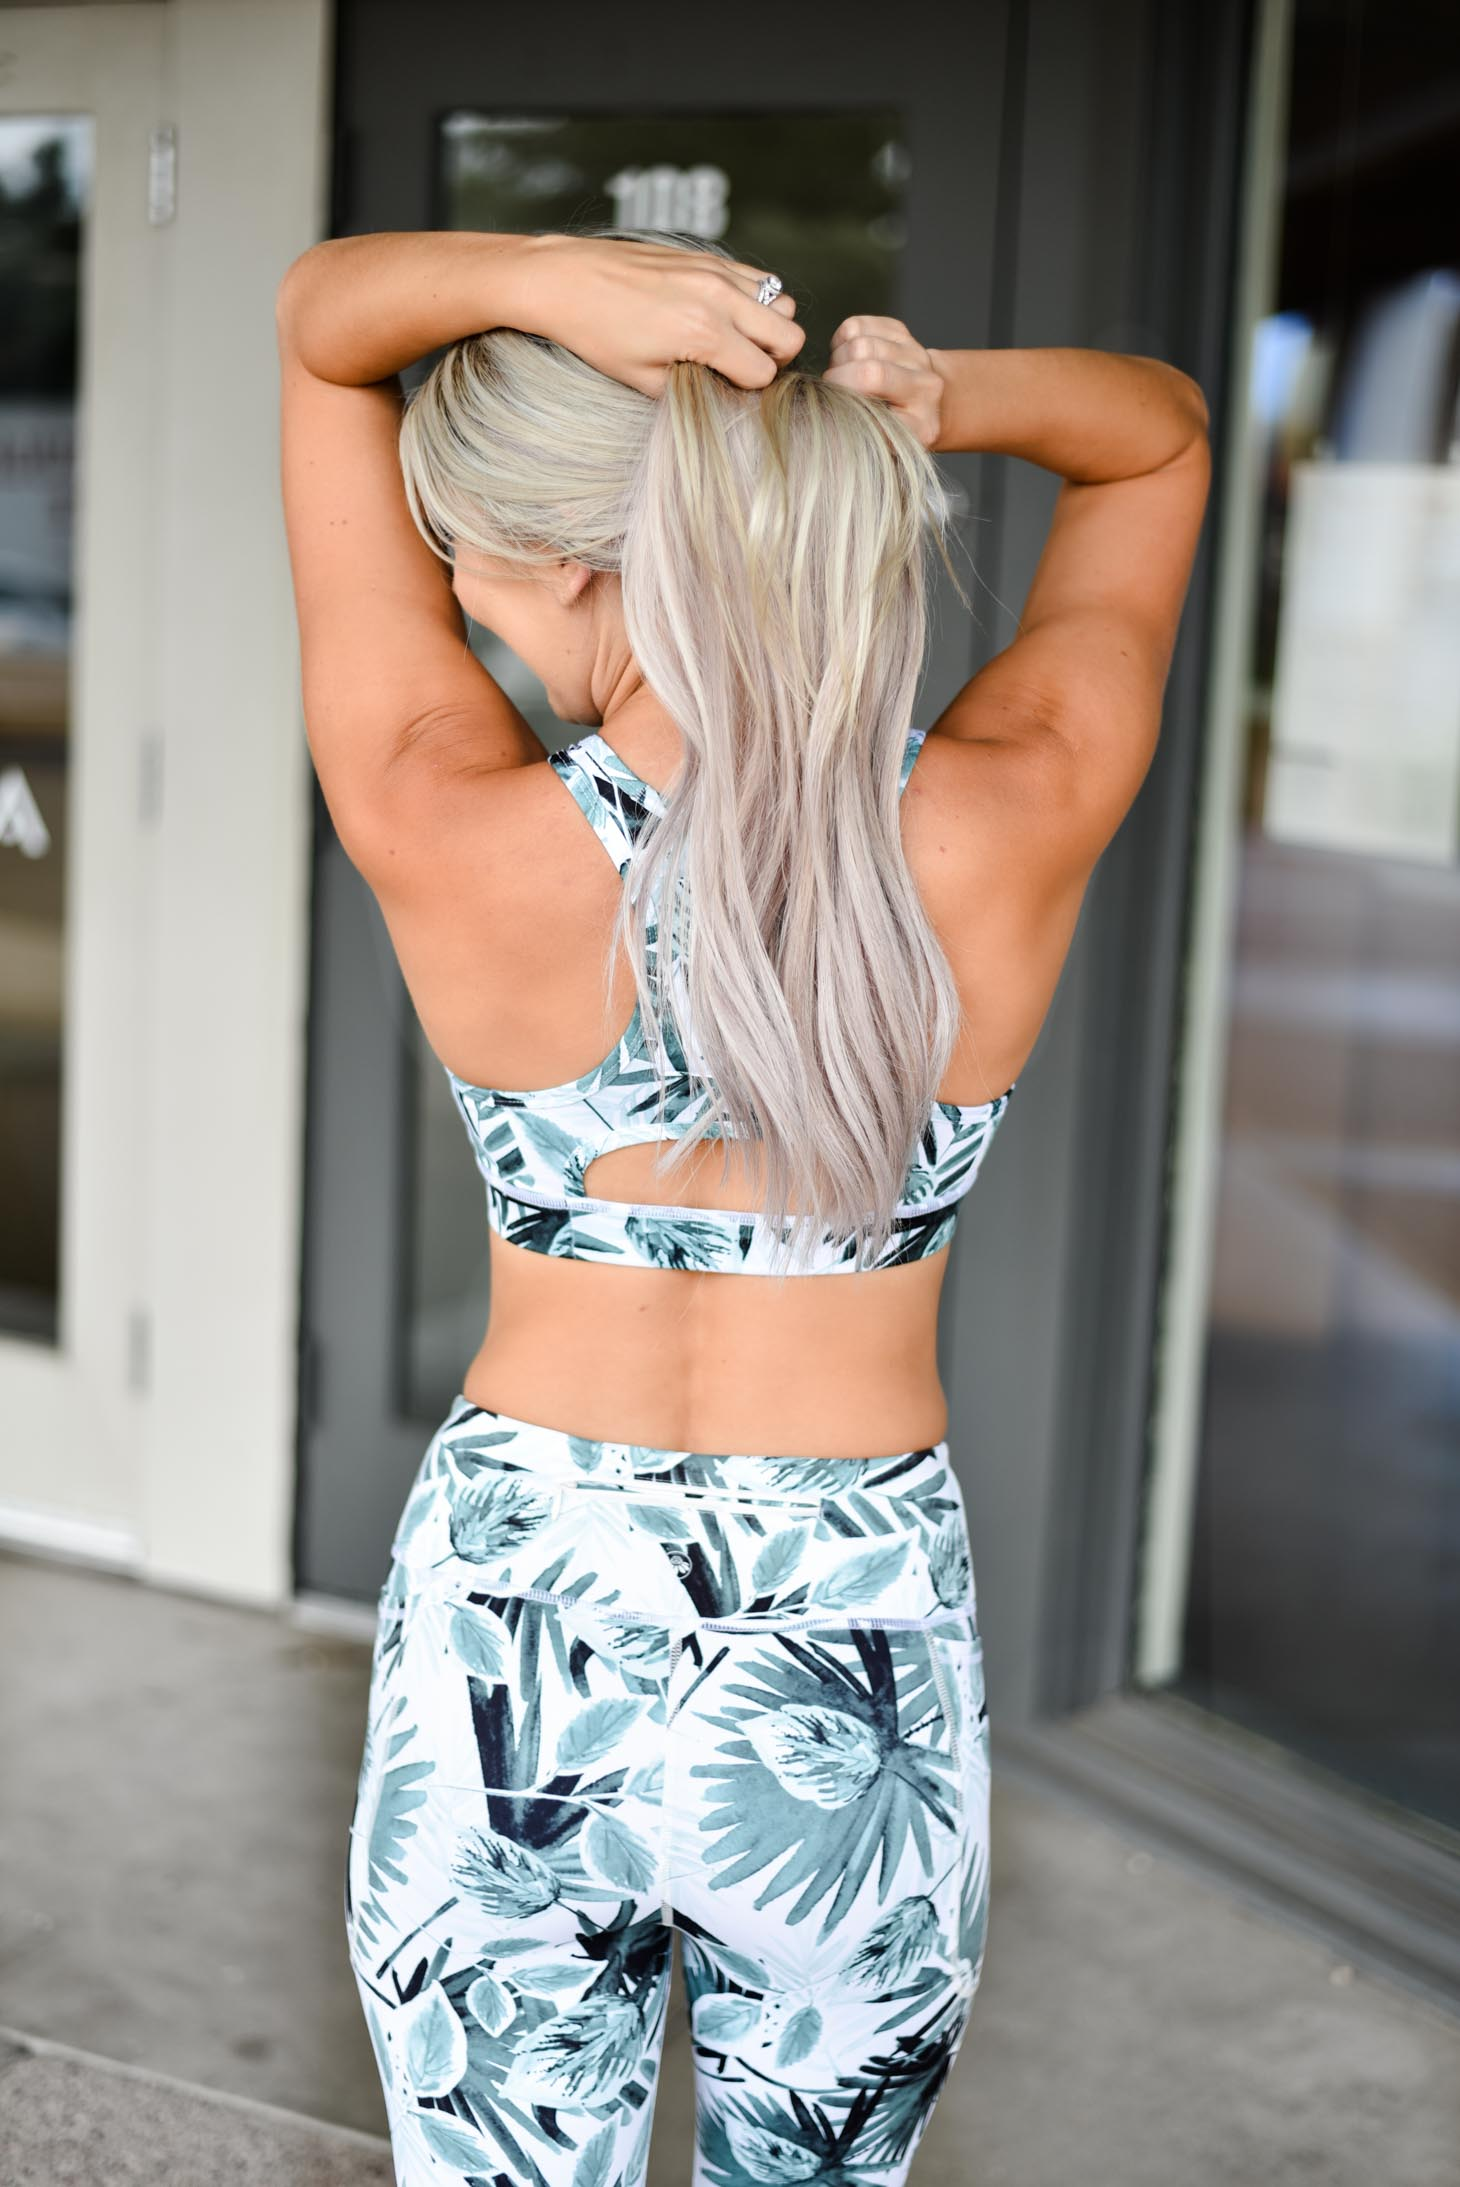 Erin Elizabeth of Wink and a Twirl shares her experience at Barre3 fitness studio in Scottsdale, Arizona wearing Senita Athletics sports bra and leggings